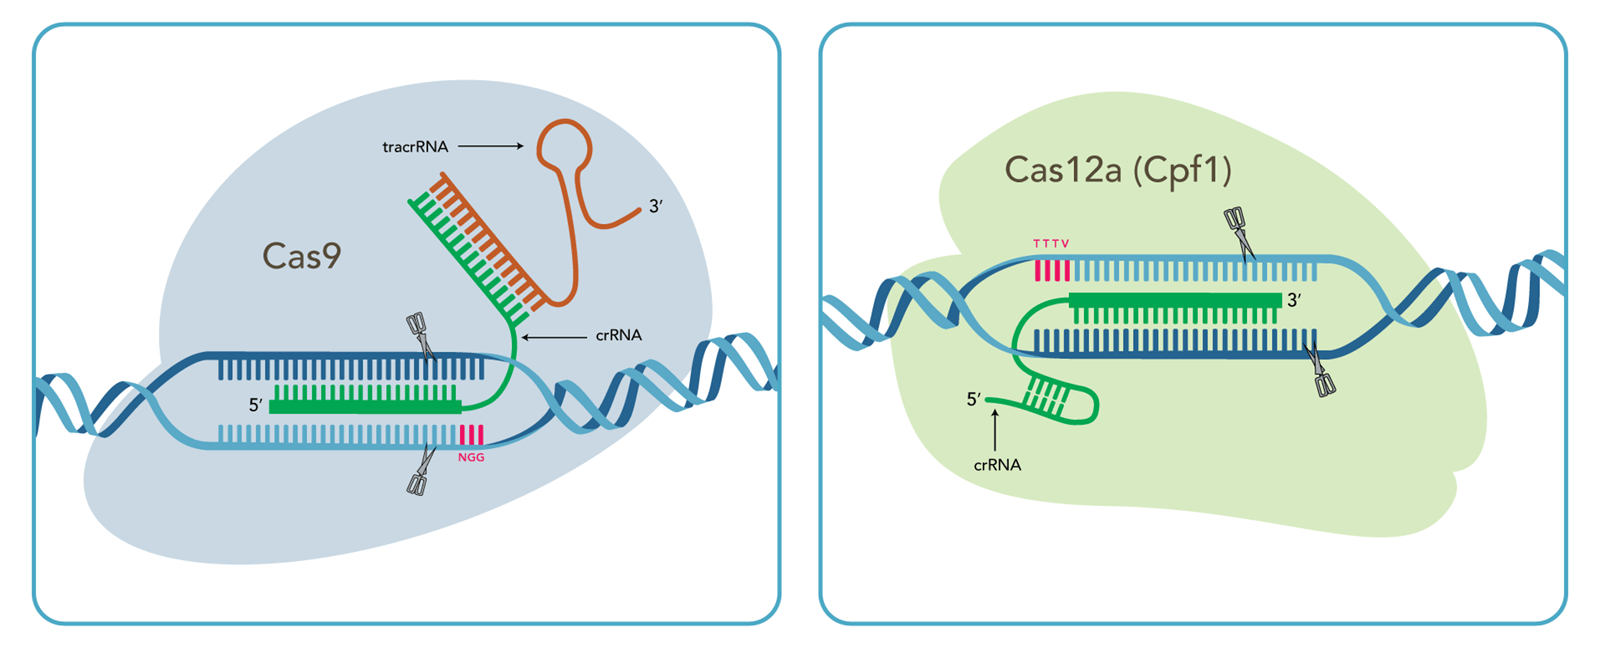 Compare Cas9 vs. Cpf1 CRISPR genome editing technology to optimize your CRISPR DNA editing experiments.